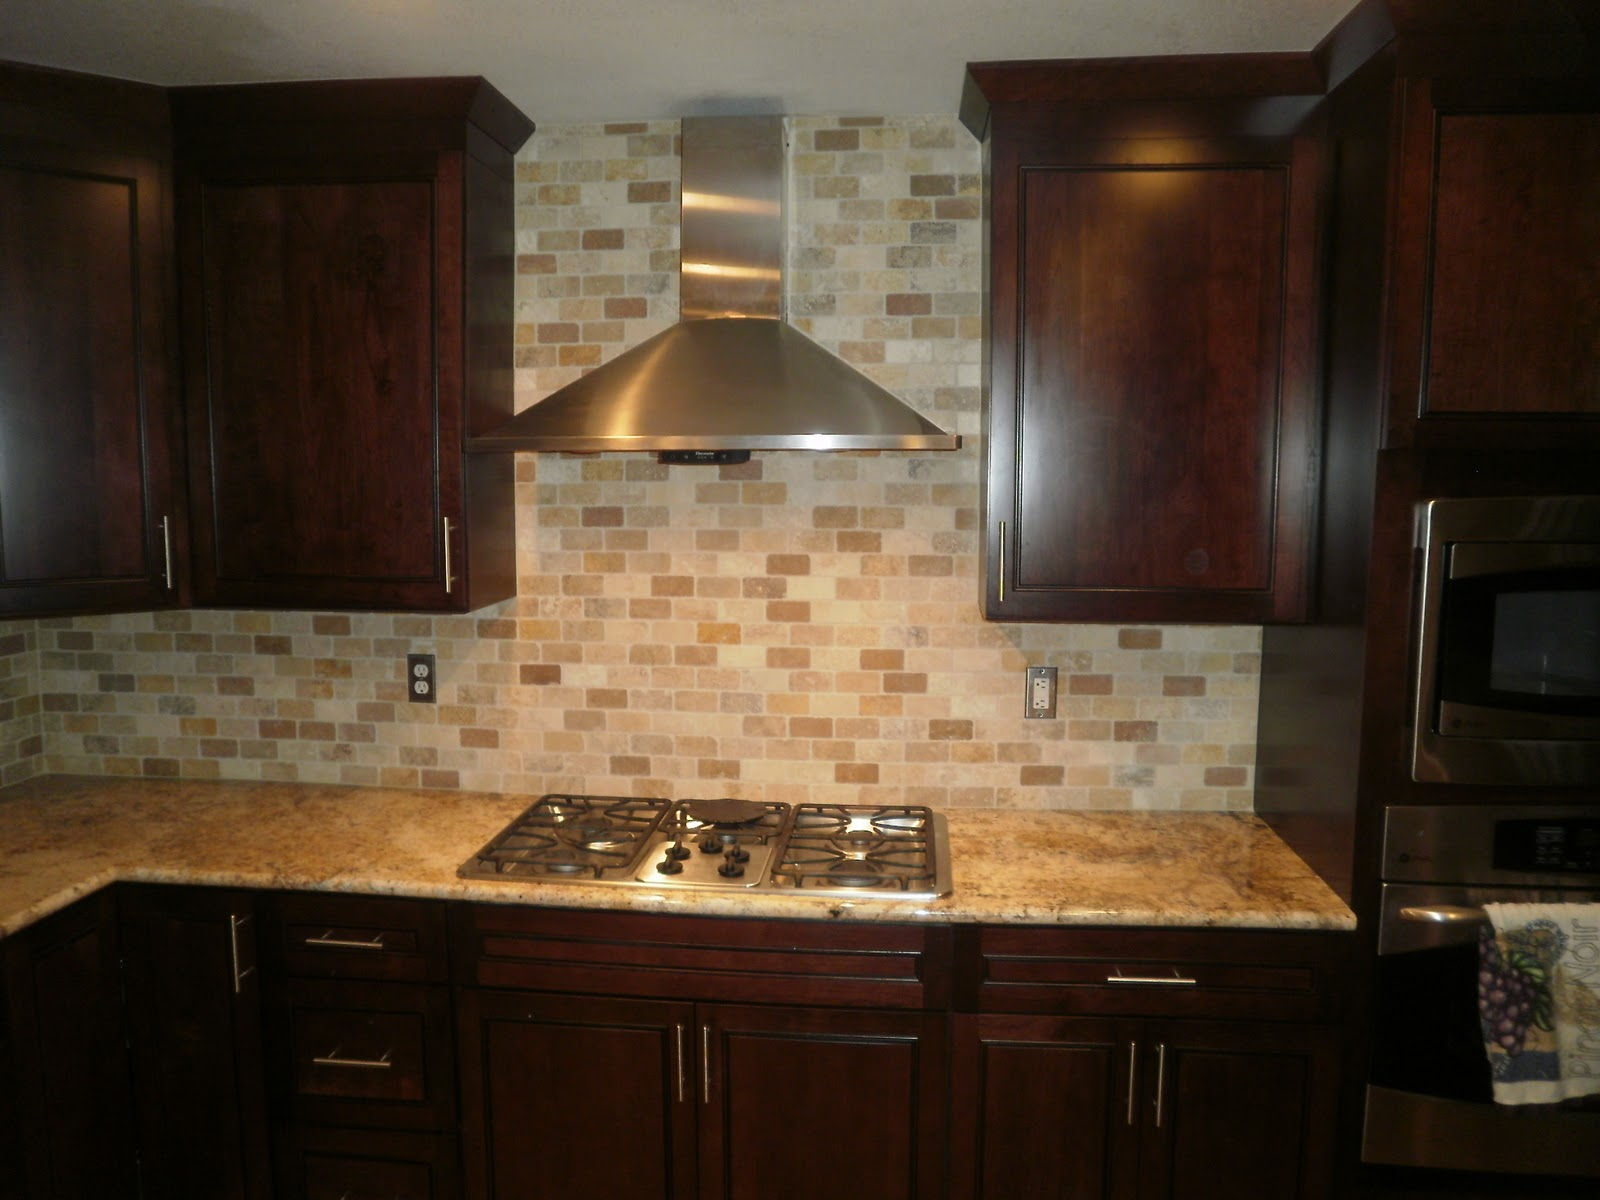 of front range backsplash 2x4 tumbled marble backsplash completed